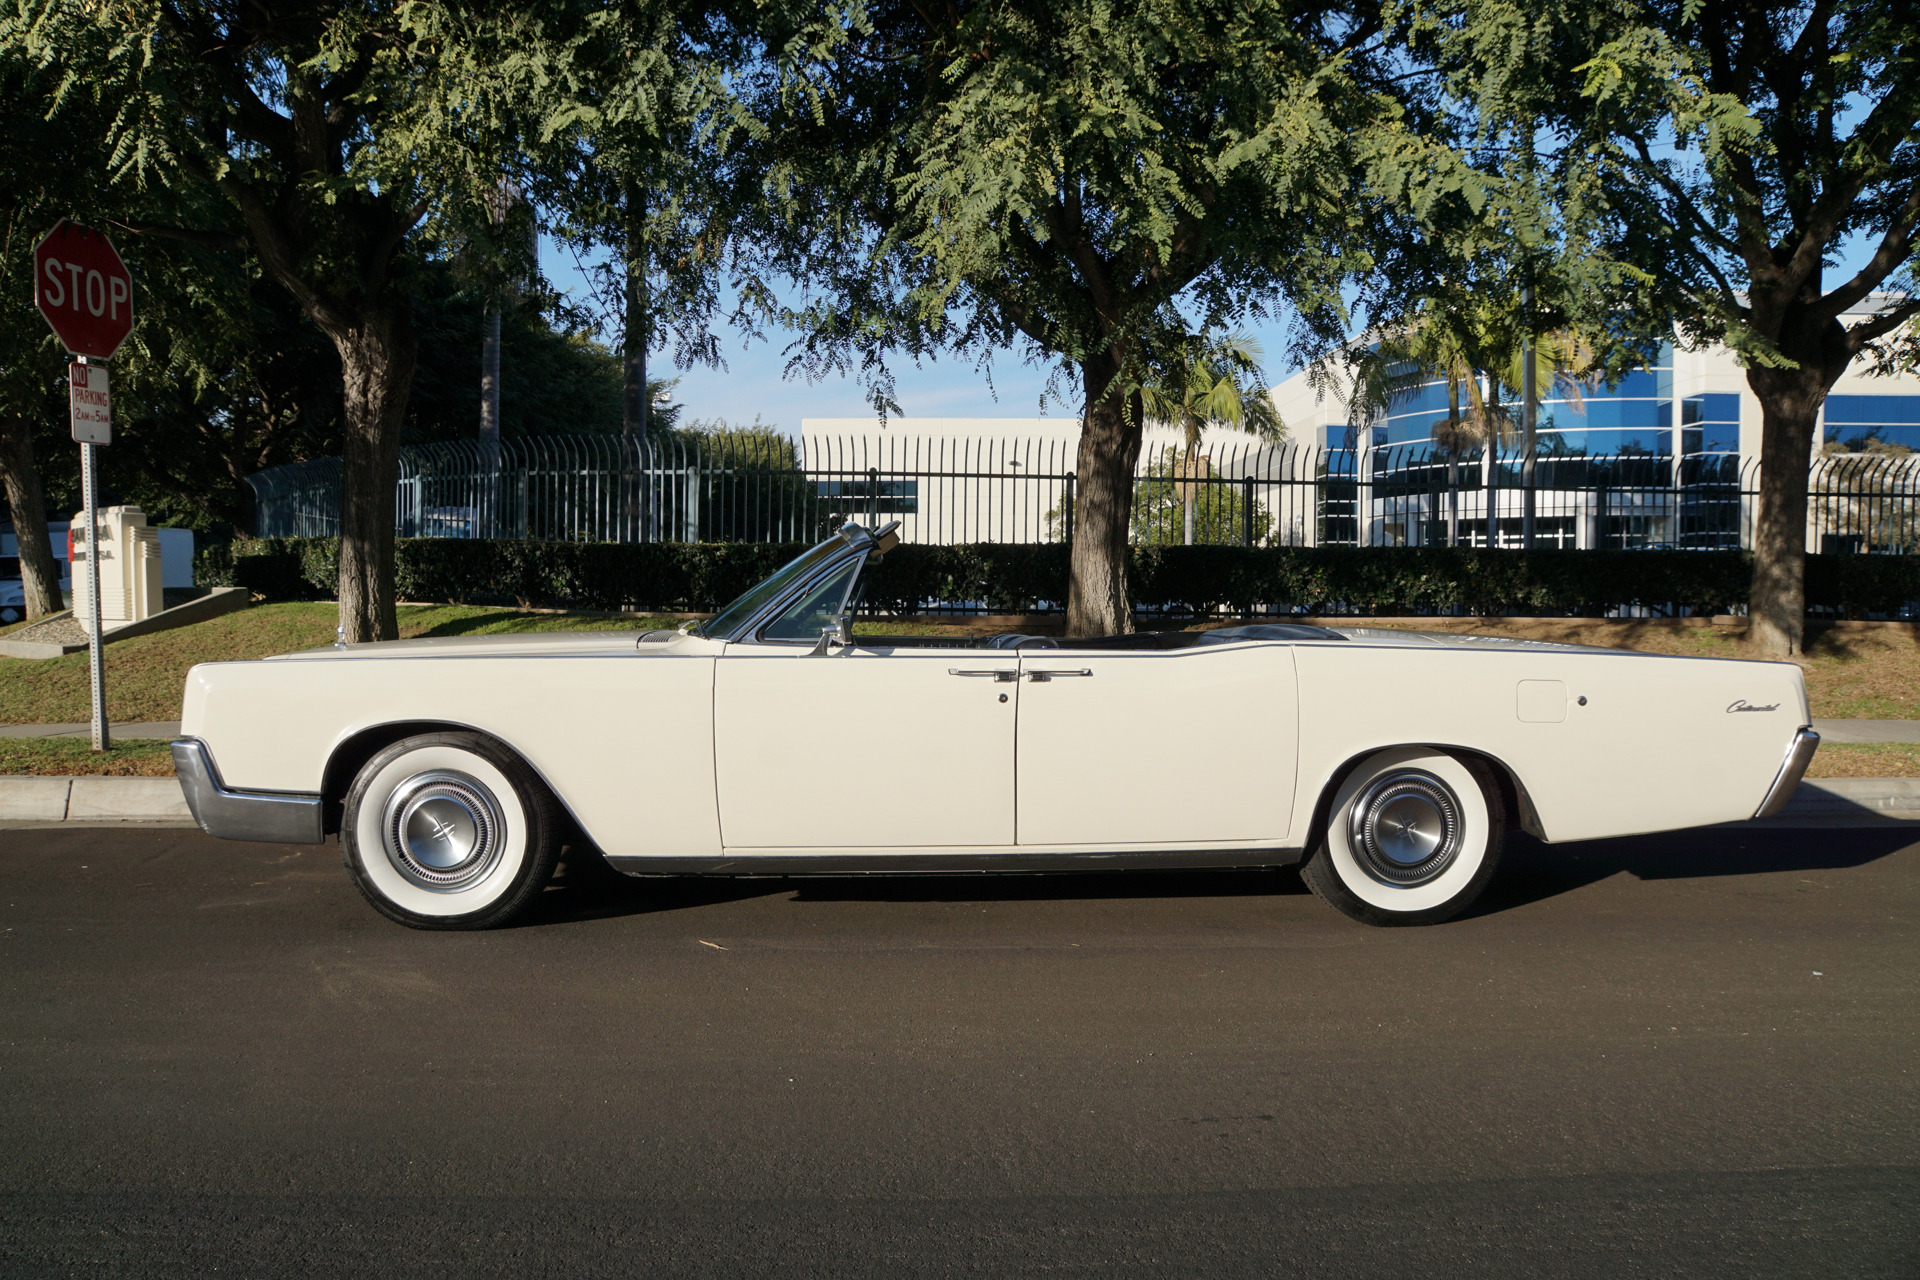 1967 lincoln continental 4 door convertible stock 789 for sale rh thewestcoastclassics com 1965 Lincoln Continental 1965 Lincoln Continental